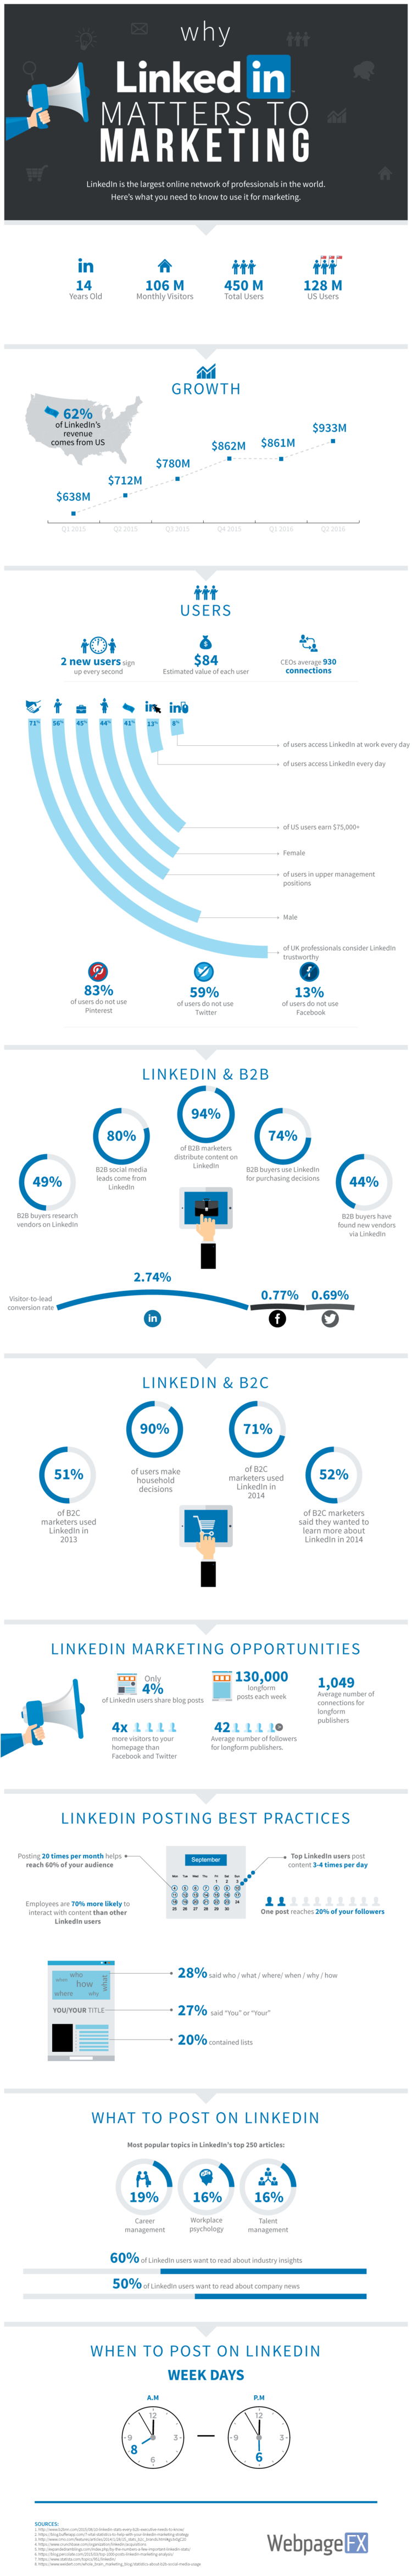 why+linkedin+matters+to+marketing.png